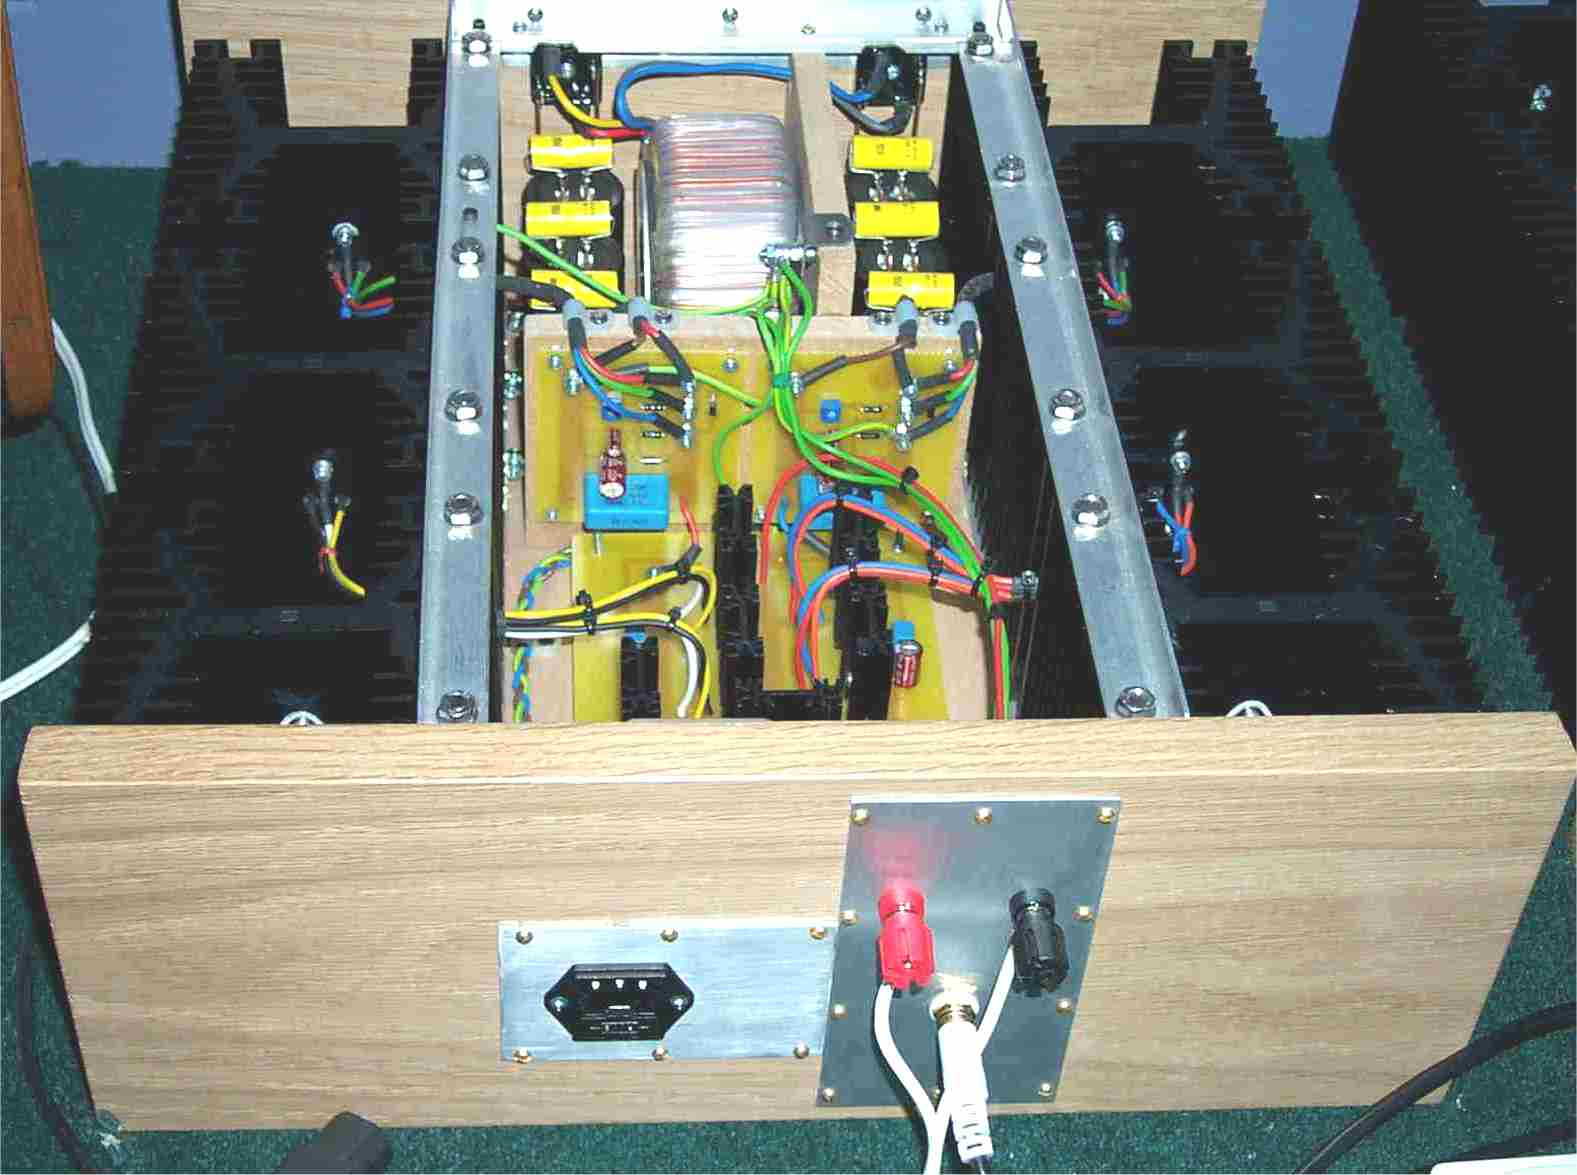 V A Lm Power Supply together with  furthermore Dsc moreover Pa Pcb Top besides Crystal. on vhf transmitter circuit